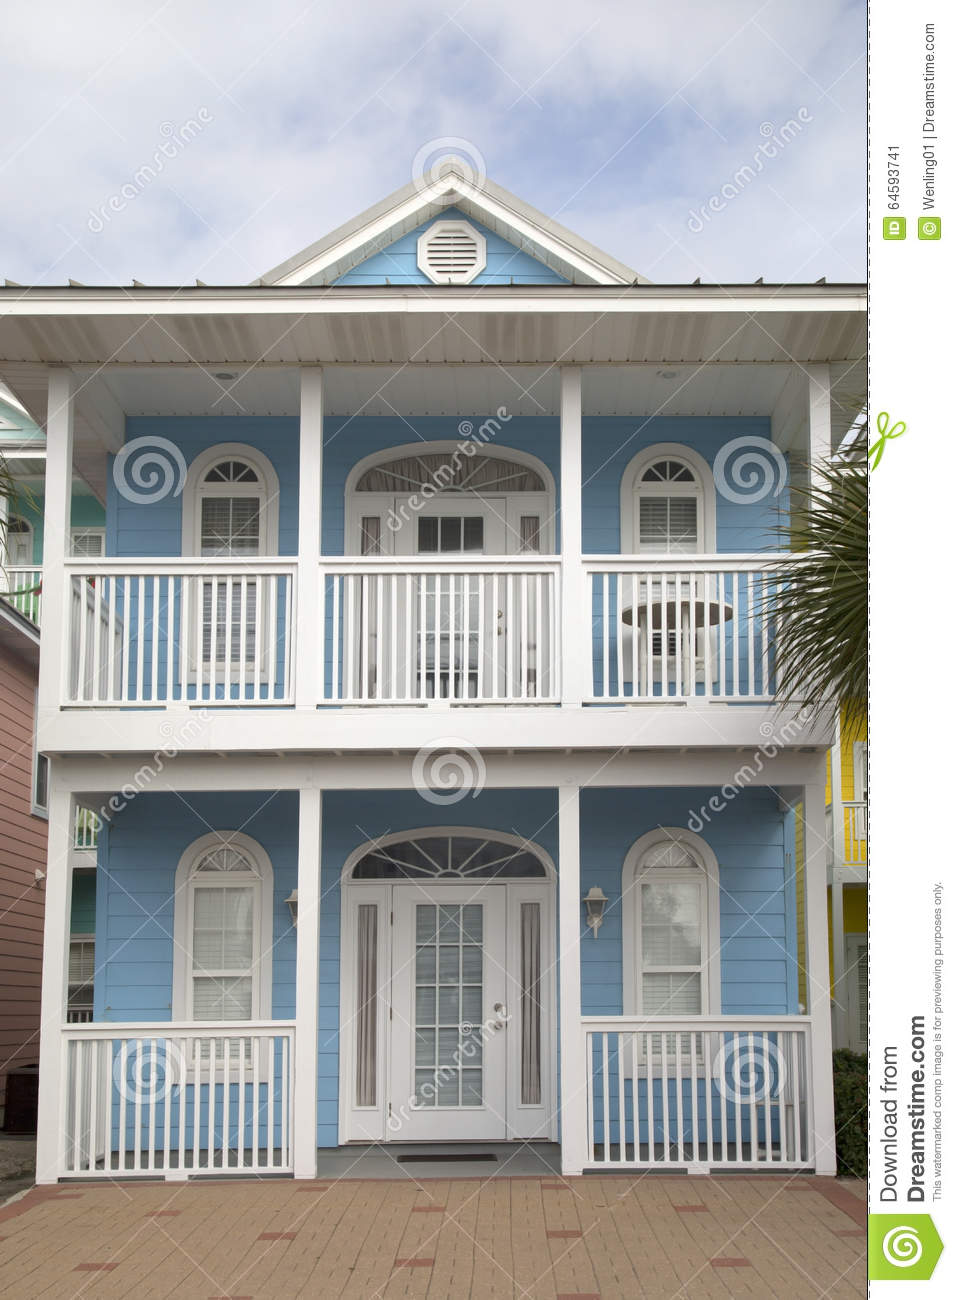 Image gallery house with balcony for Balcony synonym